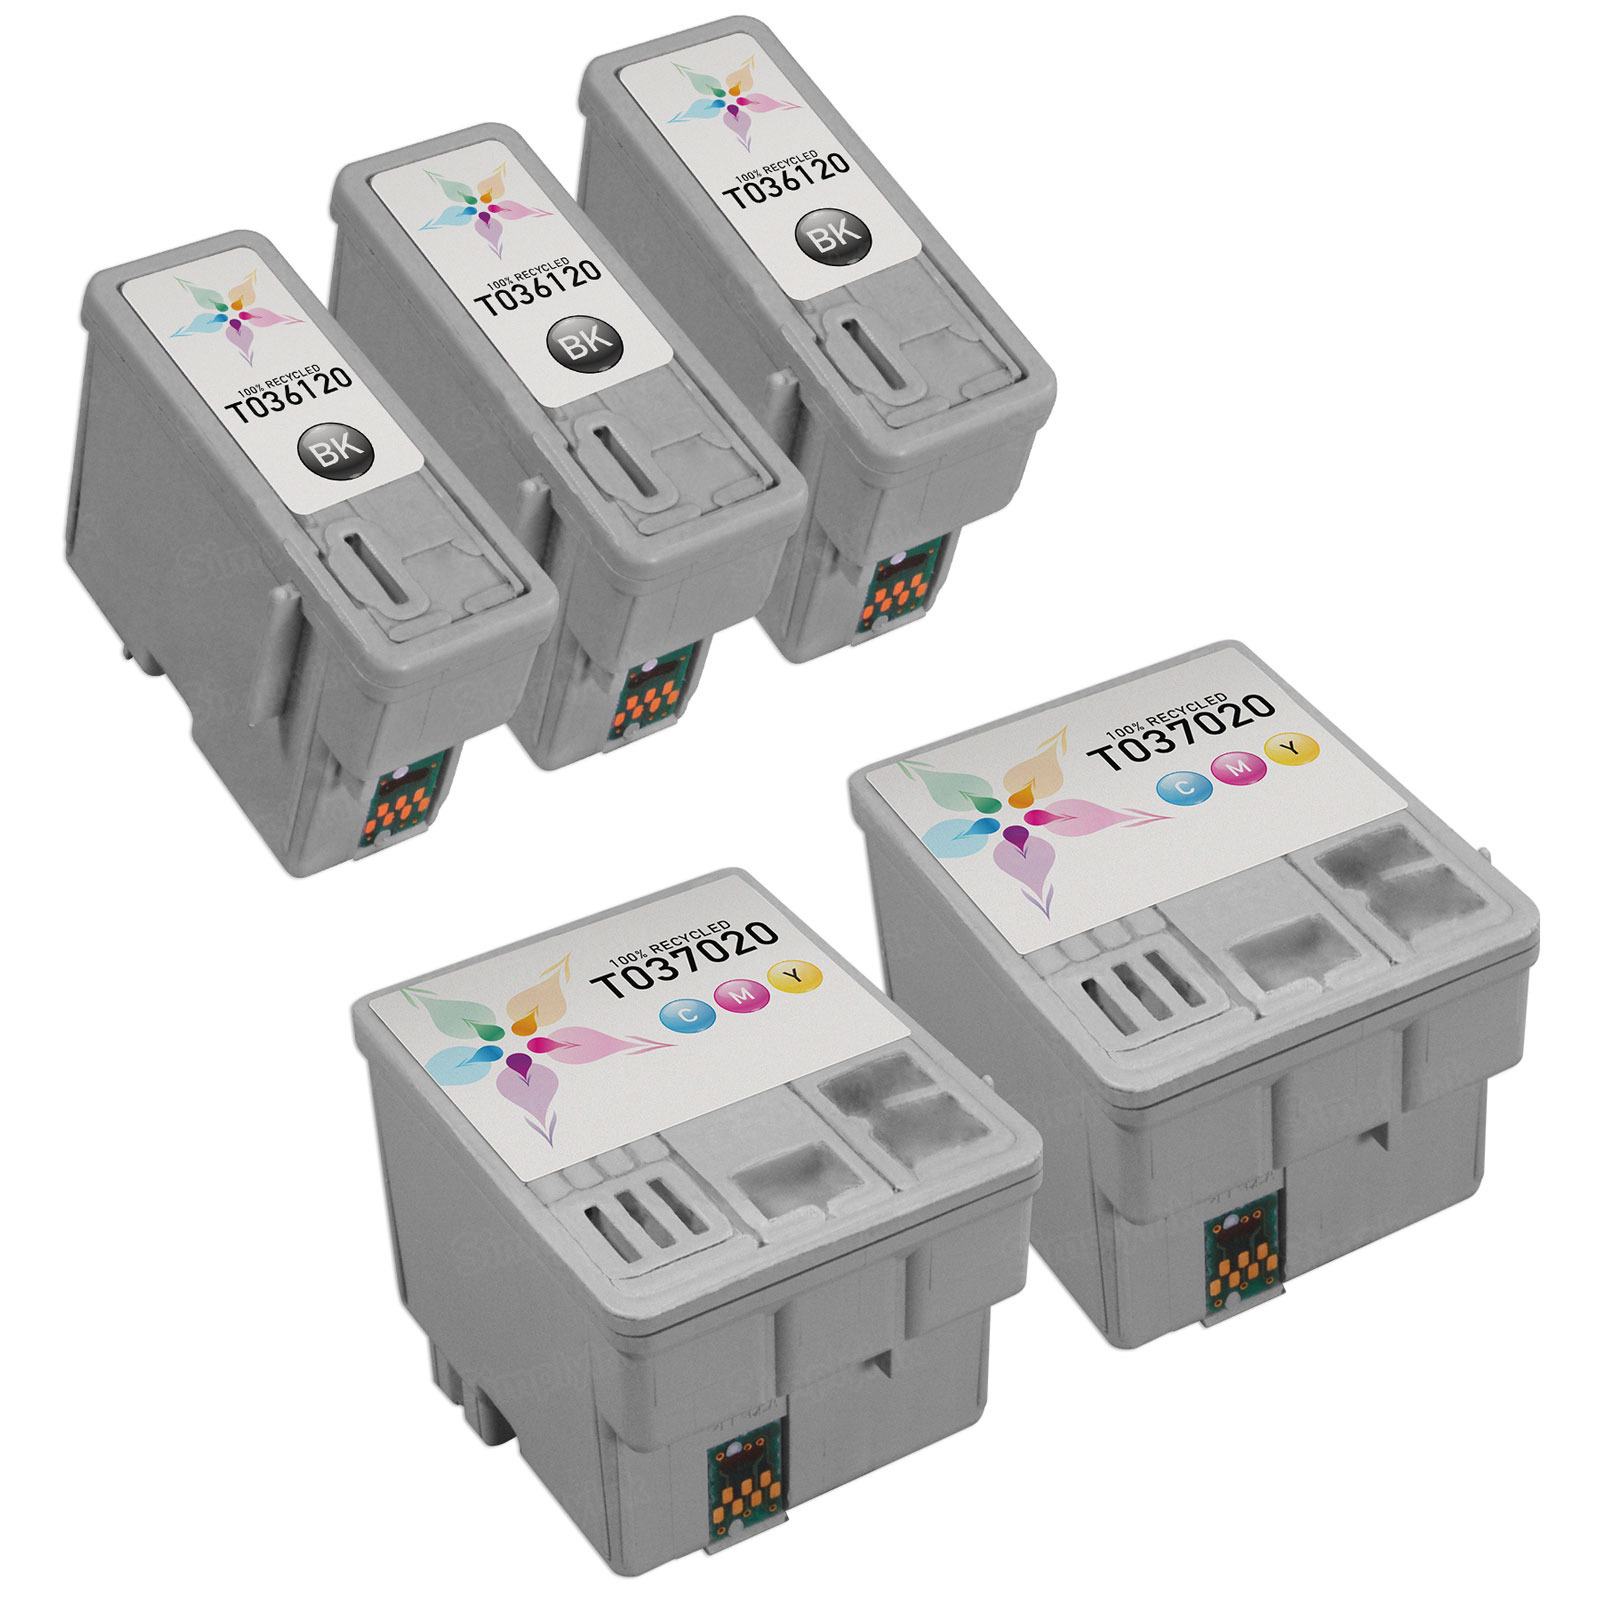 Inkjet Supplies for Epson Printers - Compatible Bulk Set of 5 Ink Cartridges 3 Black Epson T036120 (T036) and 2 Color Epson T037020 (T037)